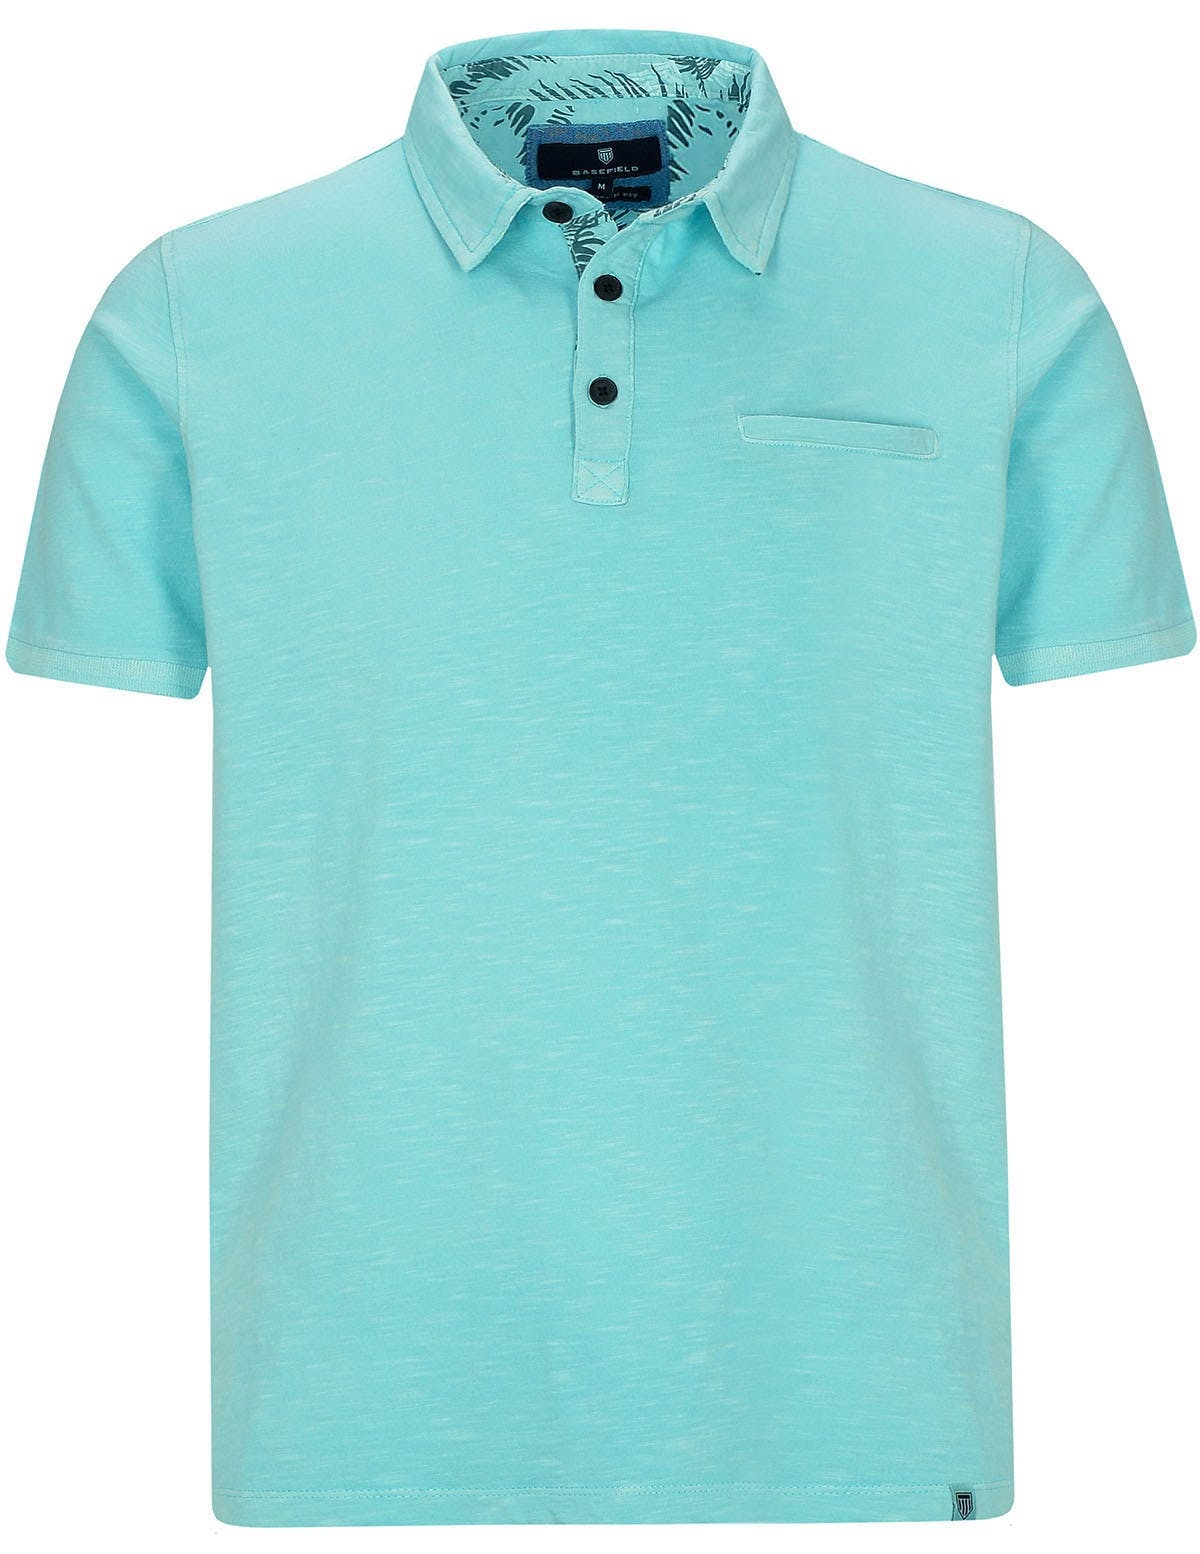 Poloshirt 1/2 Arm - Light Ocean